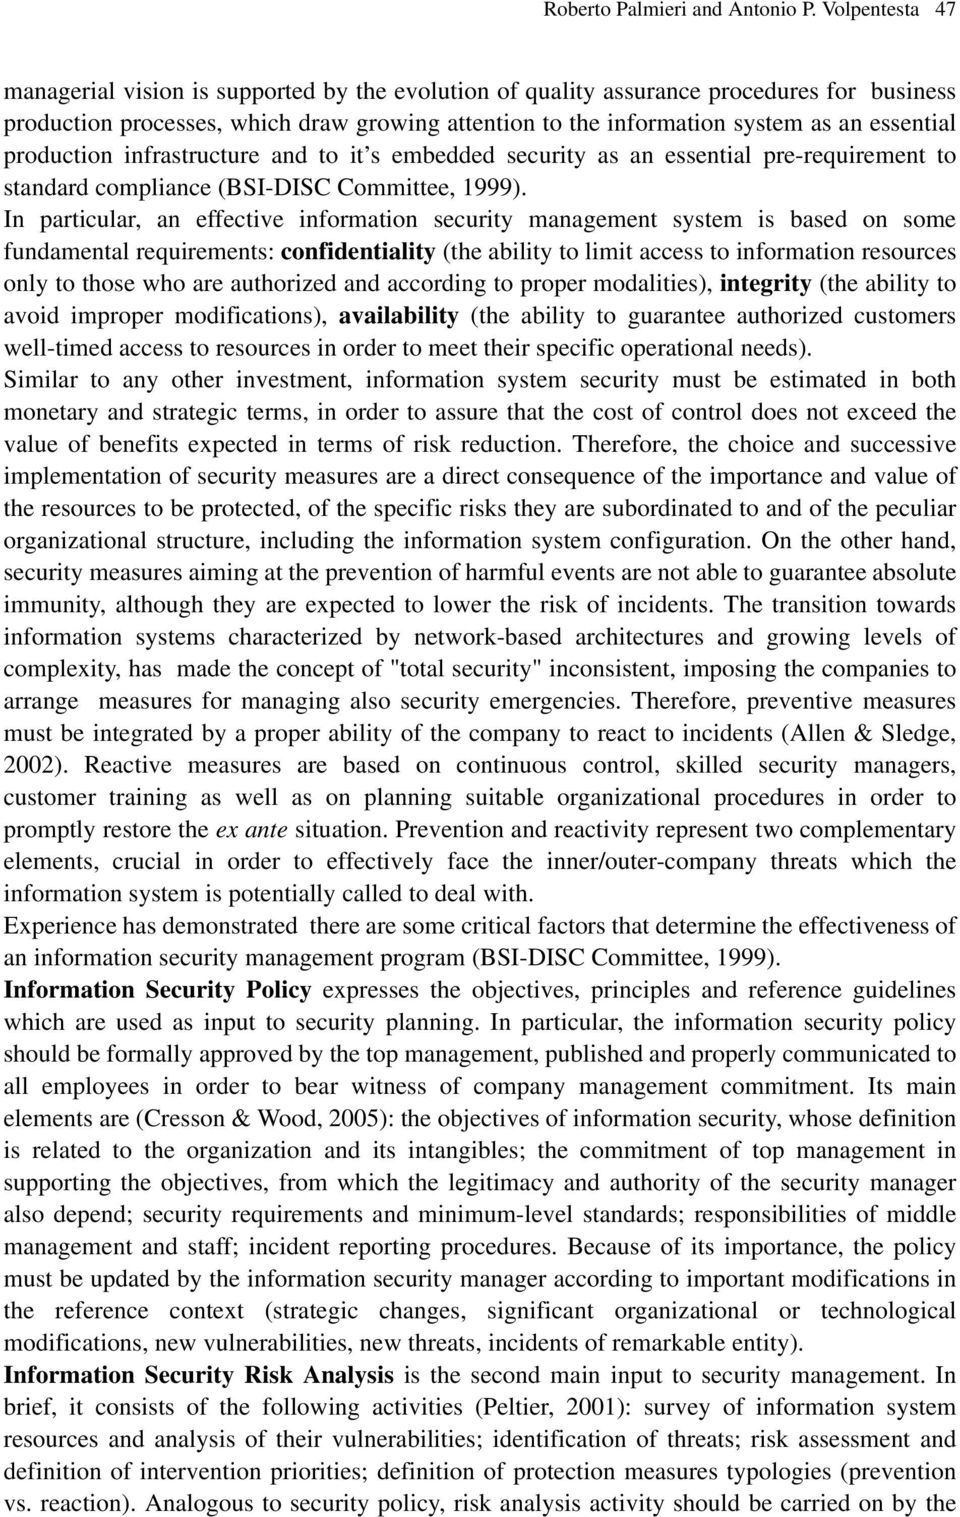 essential production infrastructure and to it s embedded security as an essential pre-requirement to standard compliance (BSI-DISC Committee, 1999).